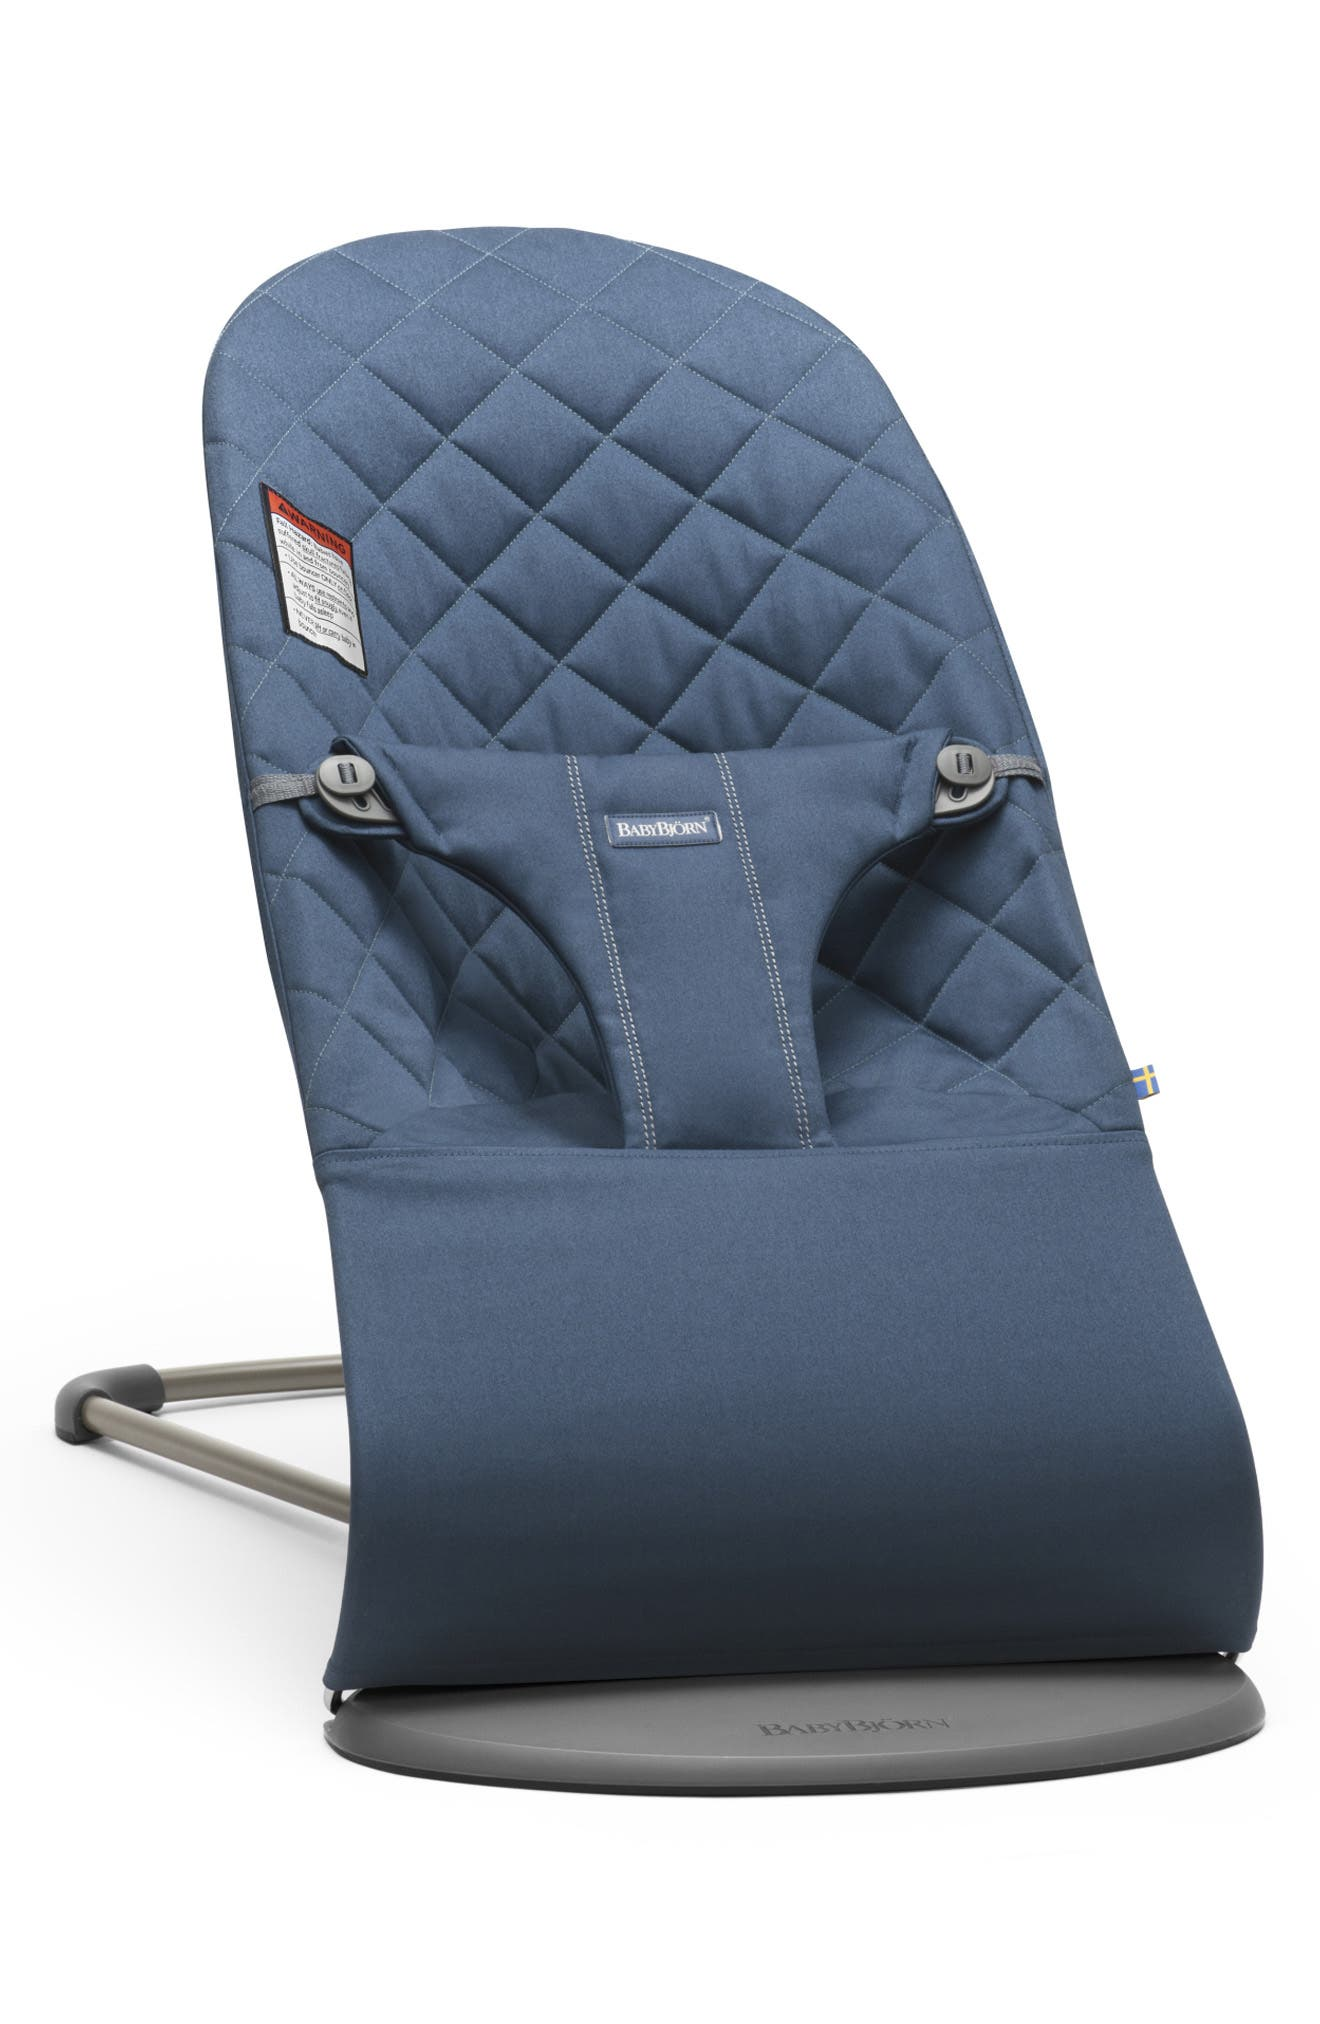 Infant Babybjorn Bouncer Bliss Convertible Quilted Baby Bouncer Size One Size  Blue